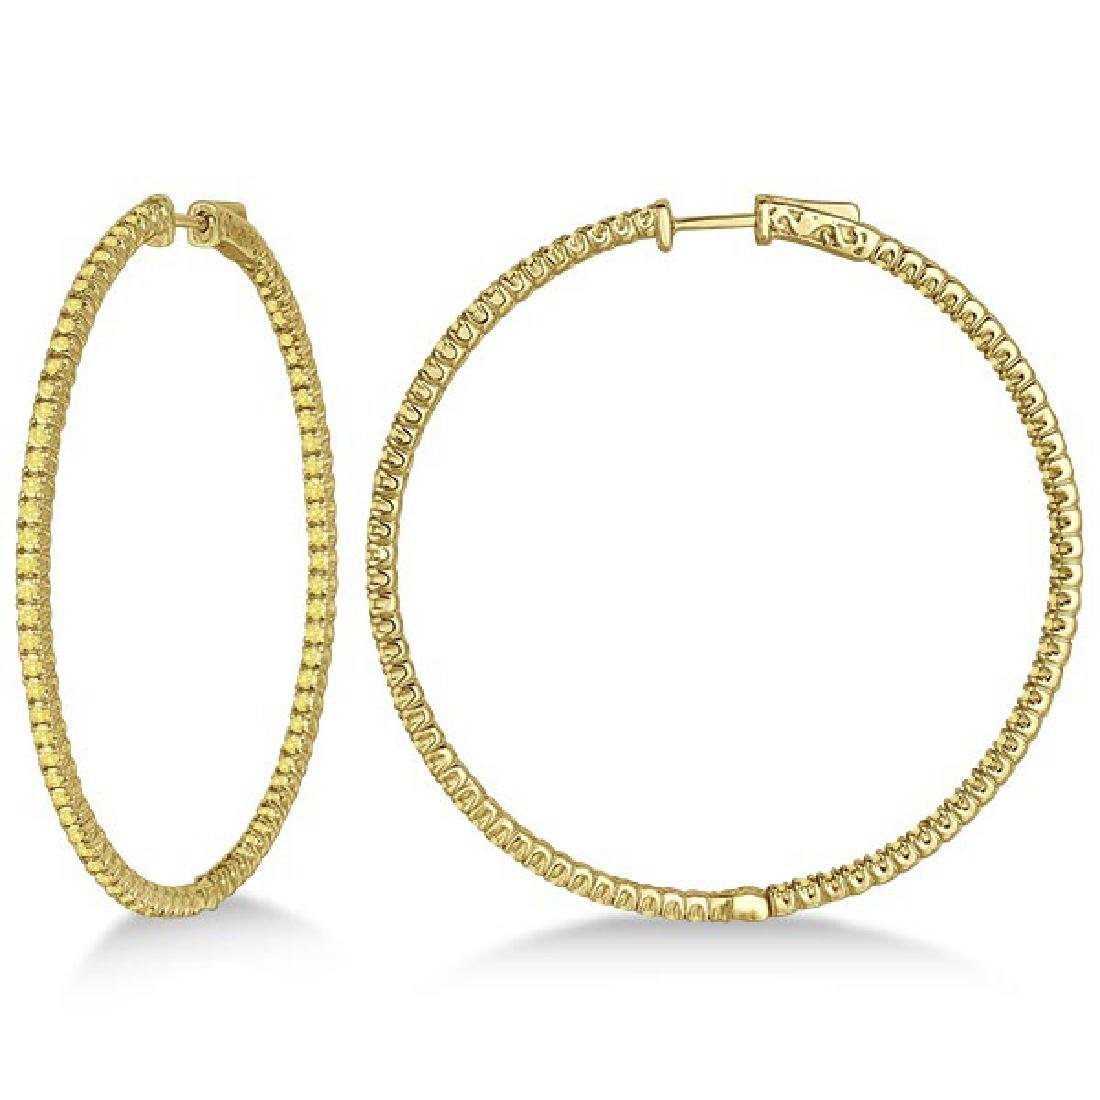 X-Large Yellow Canary Diamond Hoop Earrings 14k Yellow